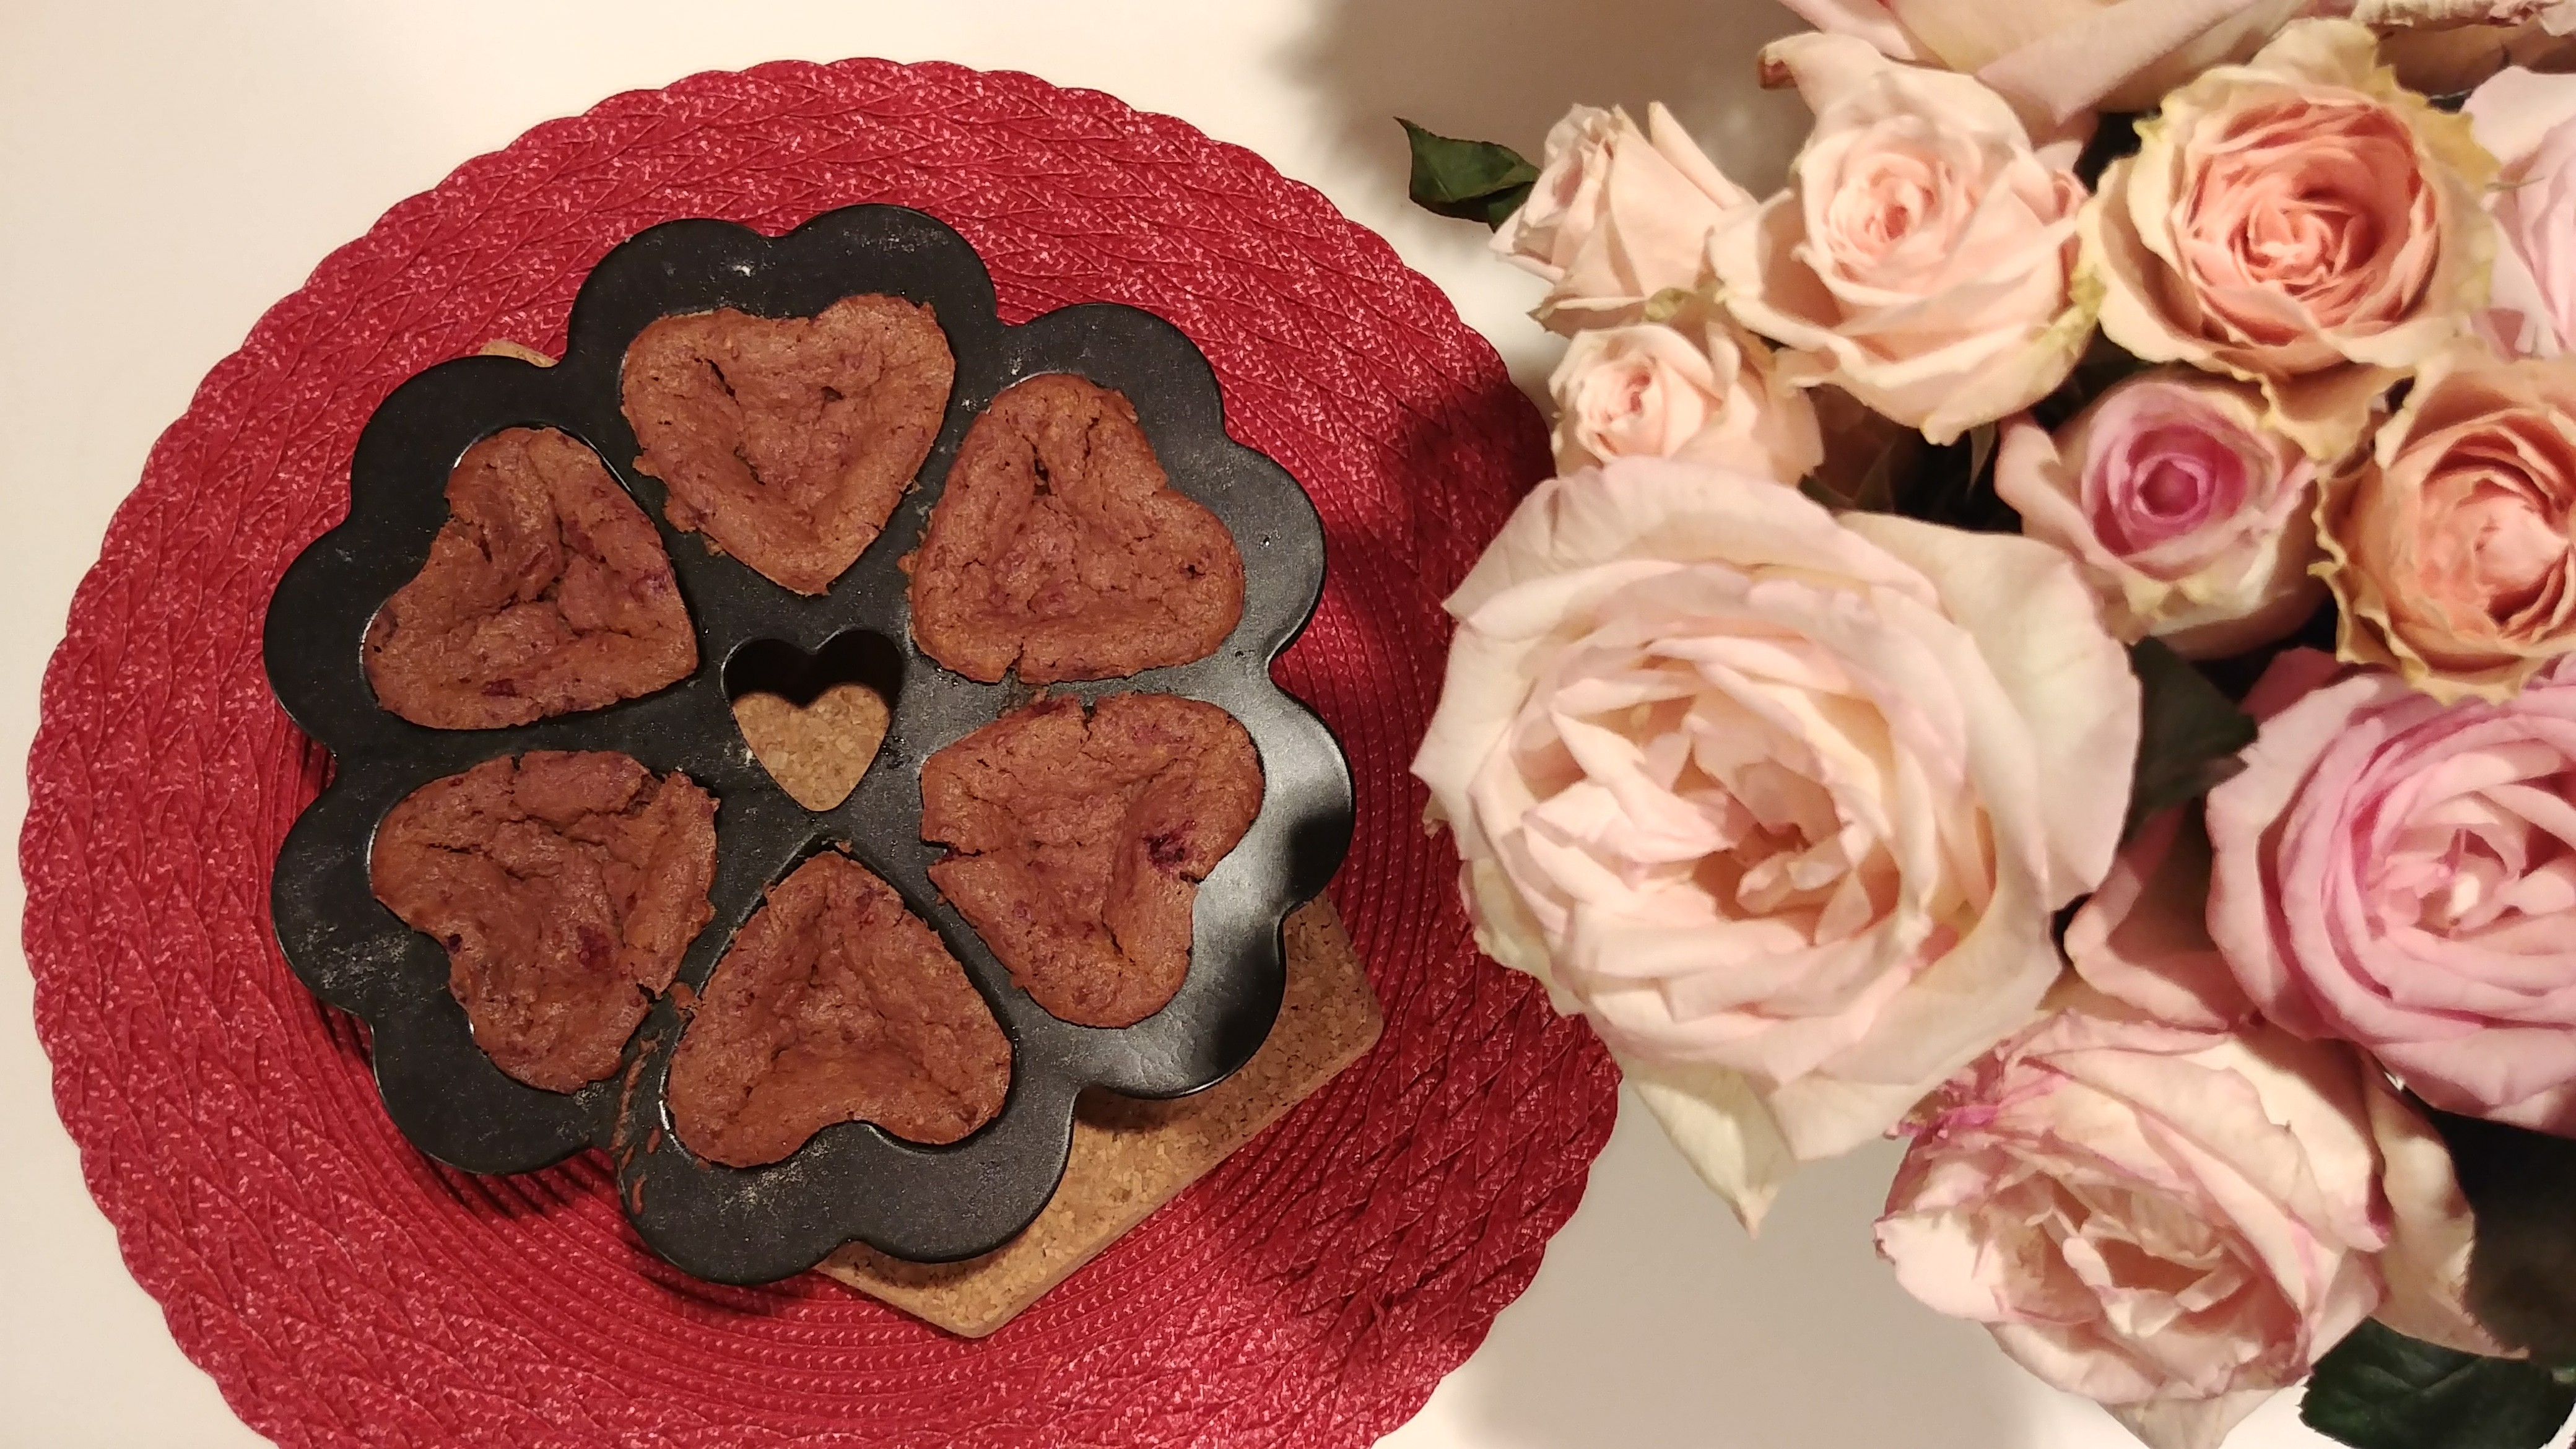 6 Cakelets in a Specialty Heart Pan with Roses on table